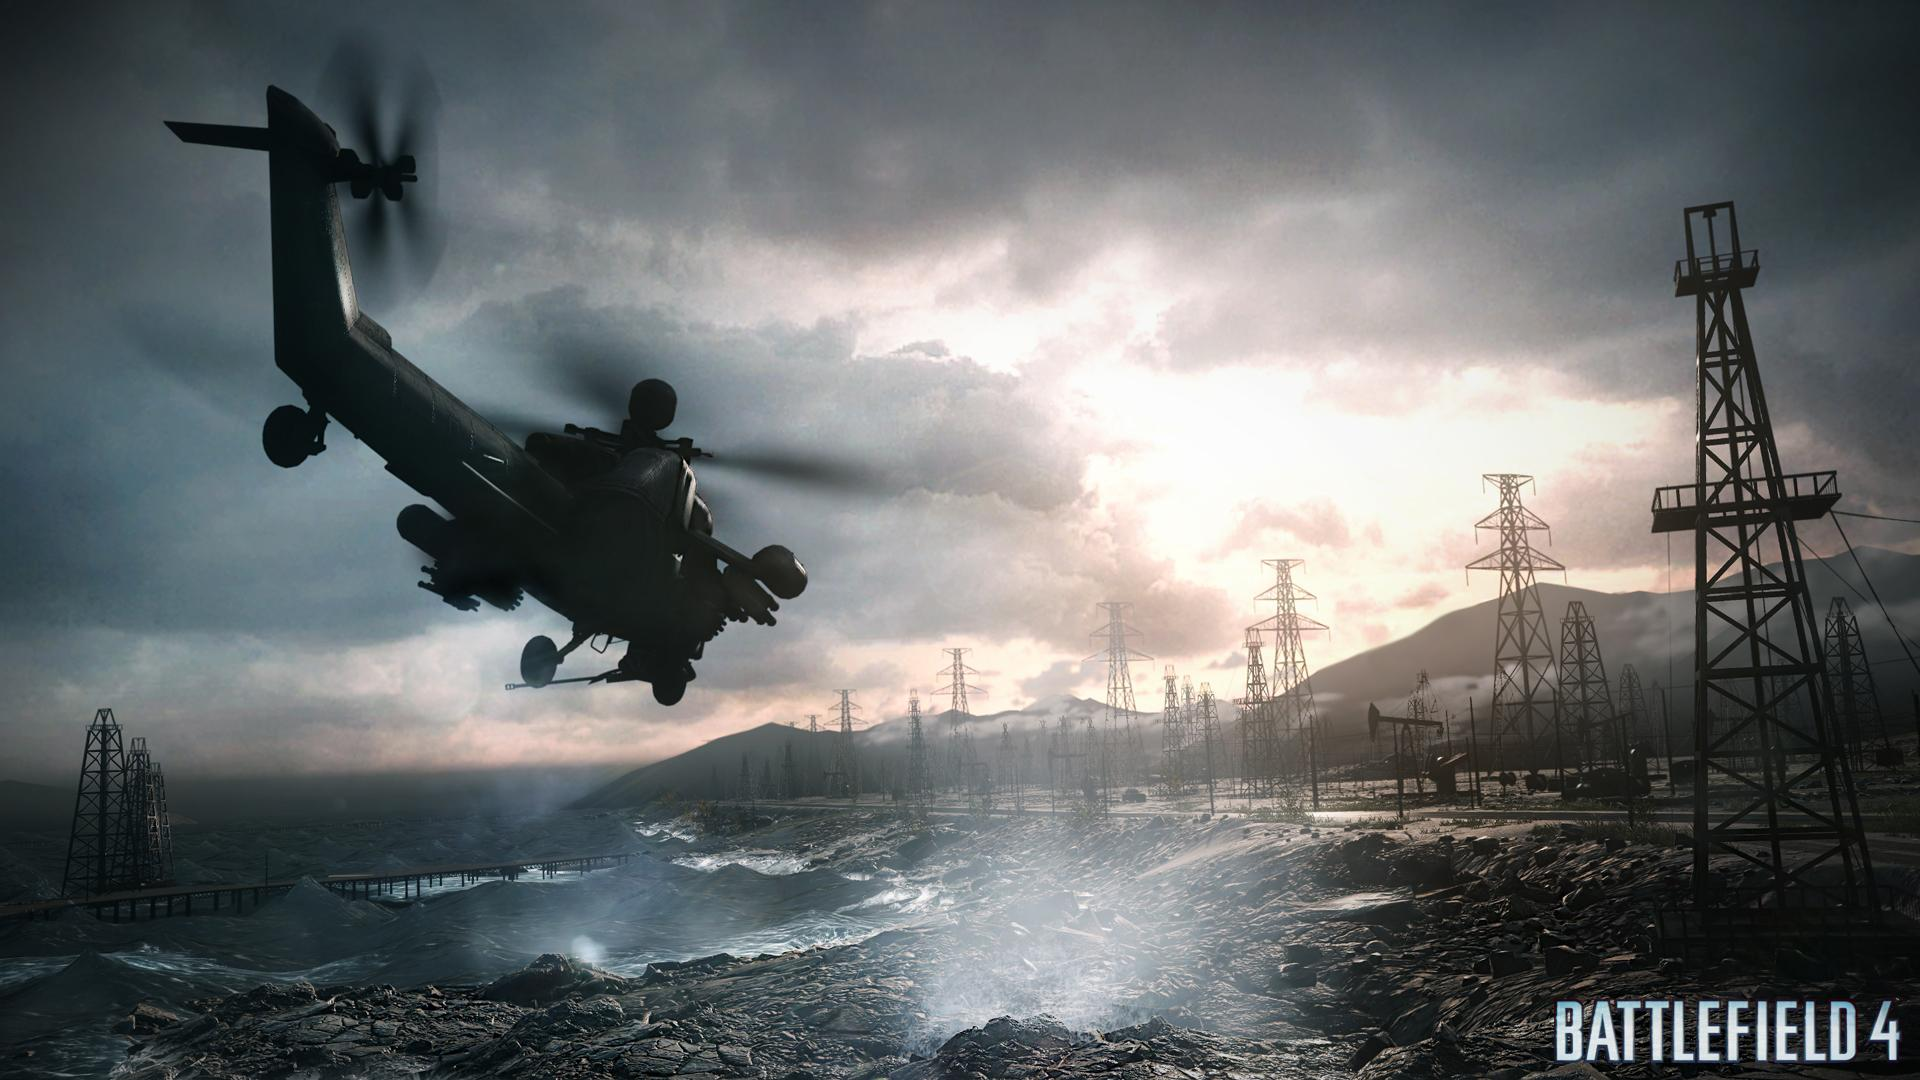 Battlefield 4 Games Wallpaper Hd: 20 Awesome HD Battlefield Wallpapers